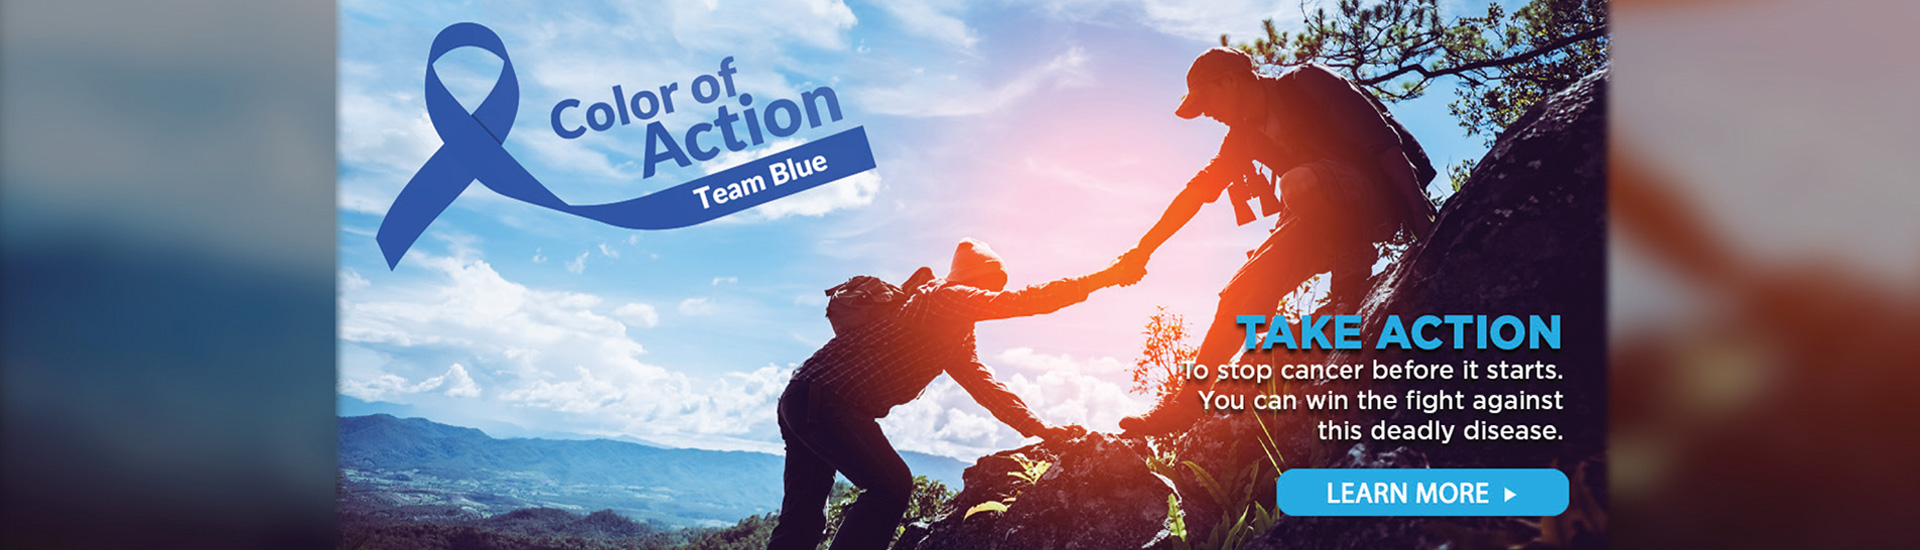 Team Blue - The Color of Action